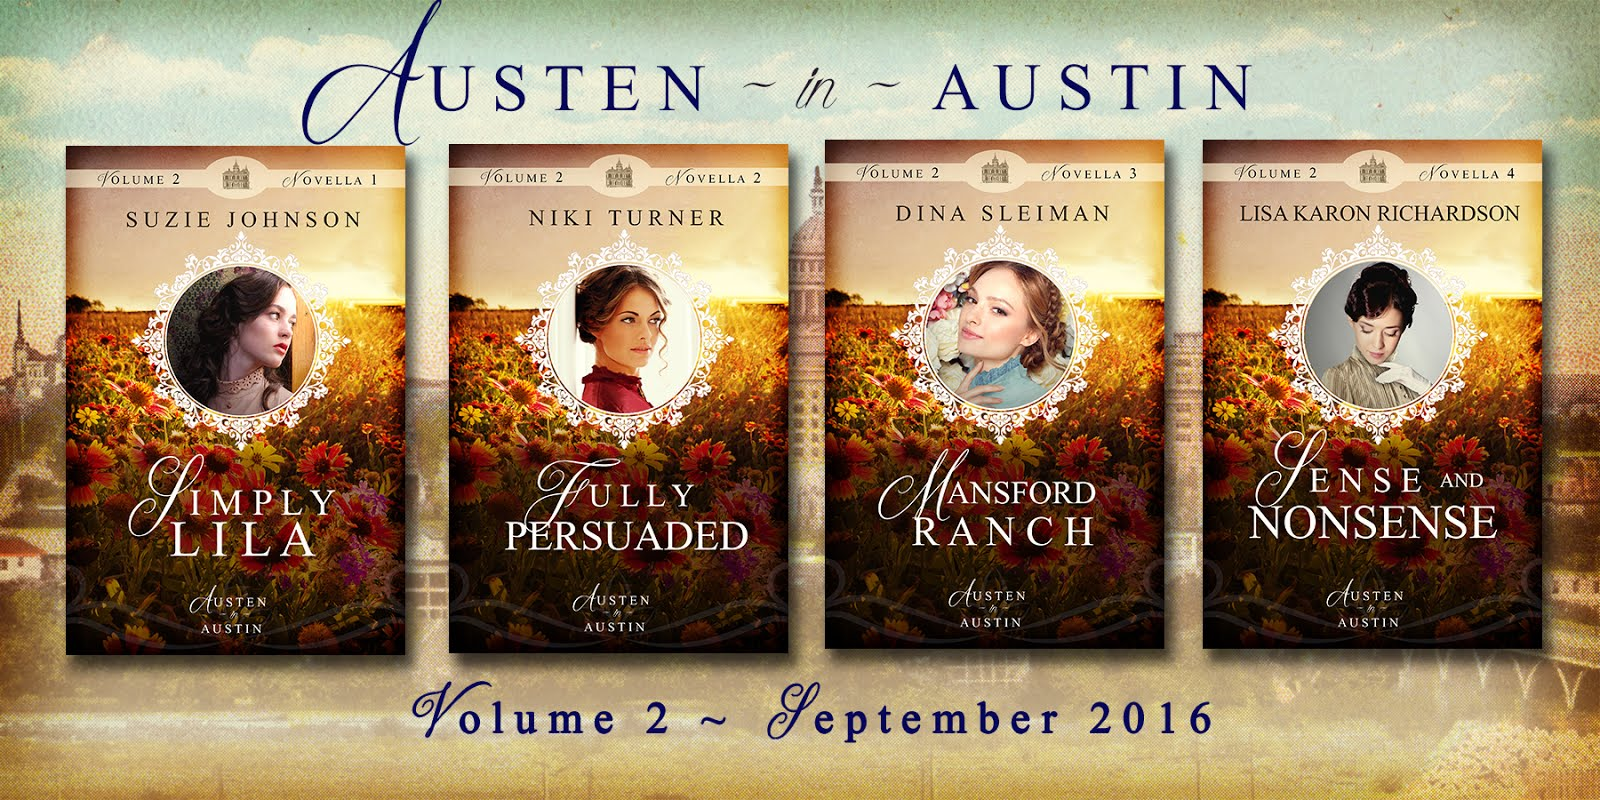 Austen in Austin, Volume II